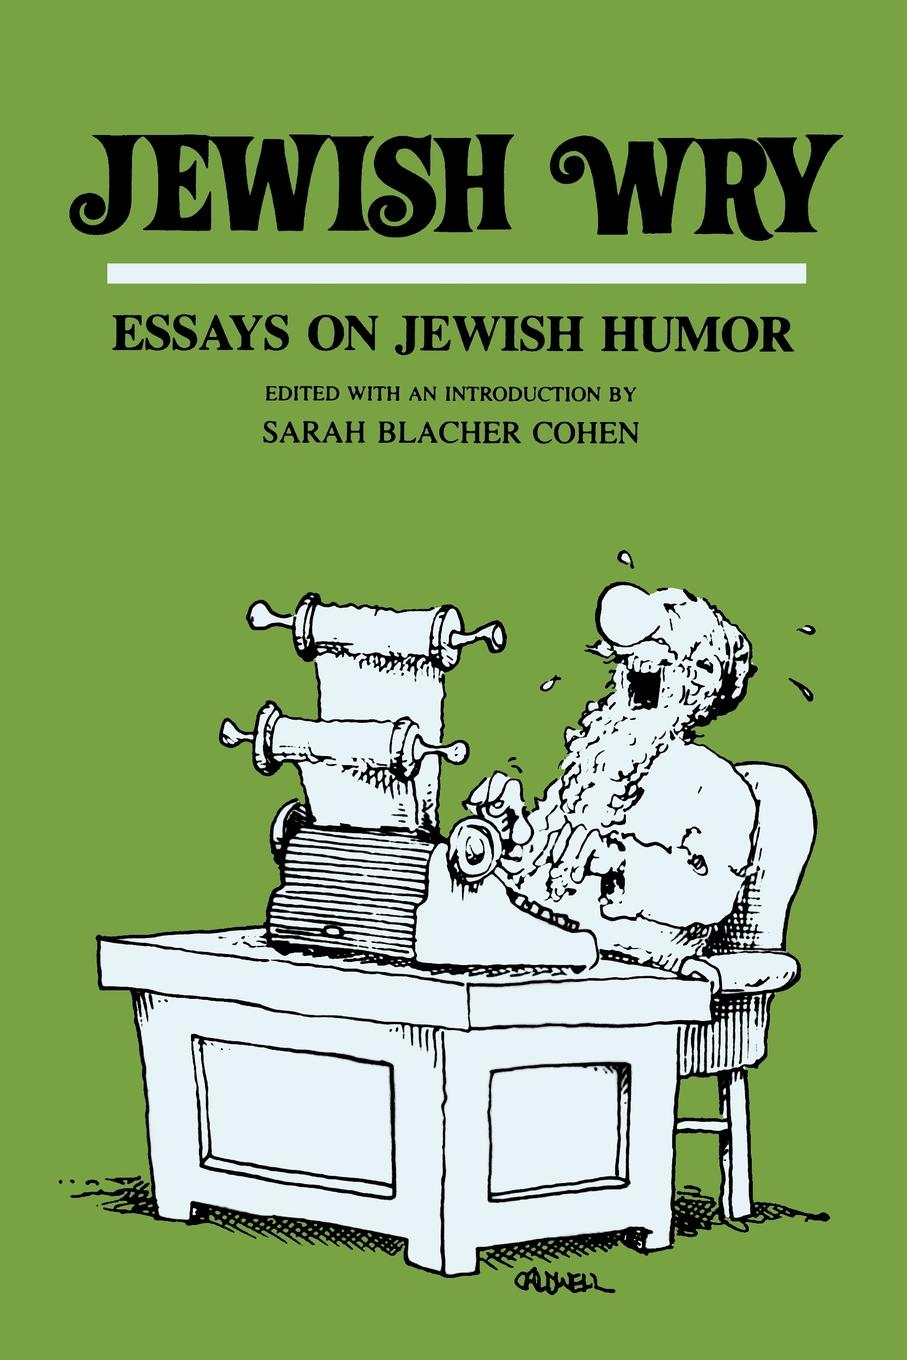 Jewish Wry. Essays on Jewish Humor a history of the jews in the united states